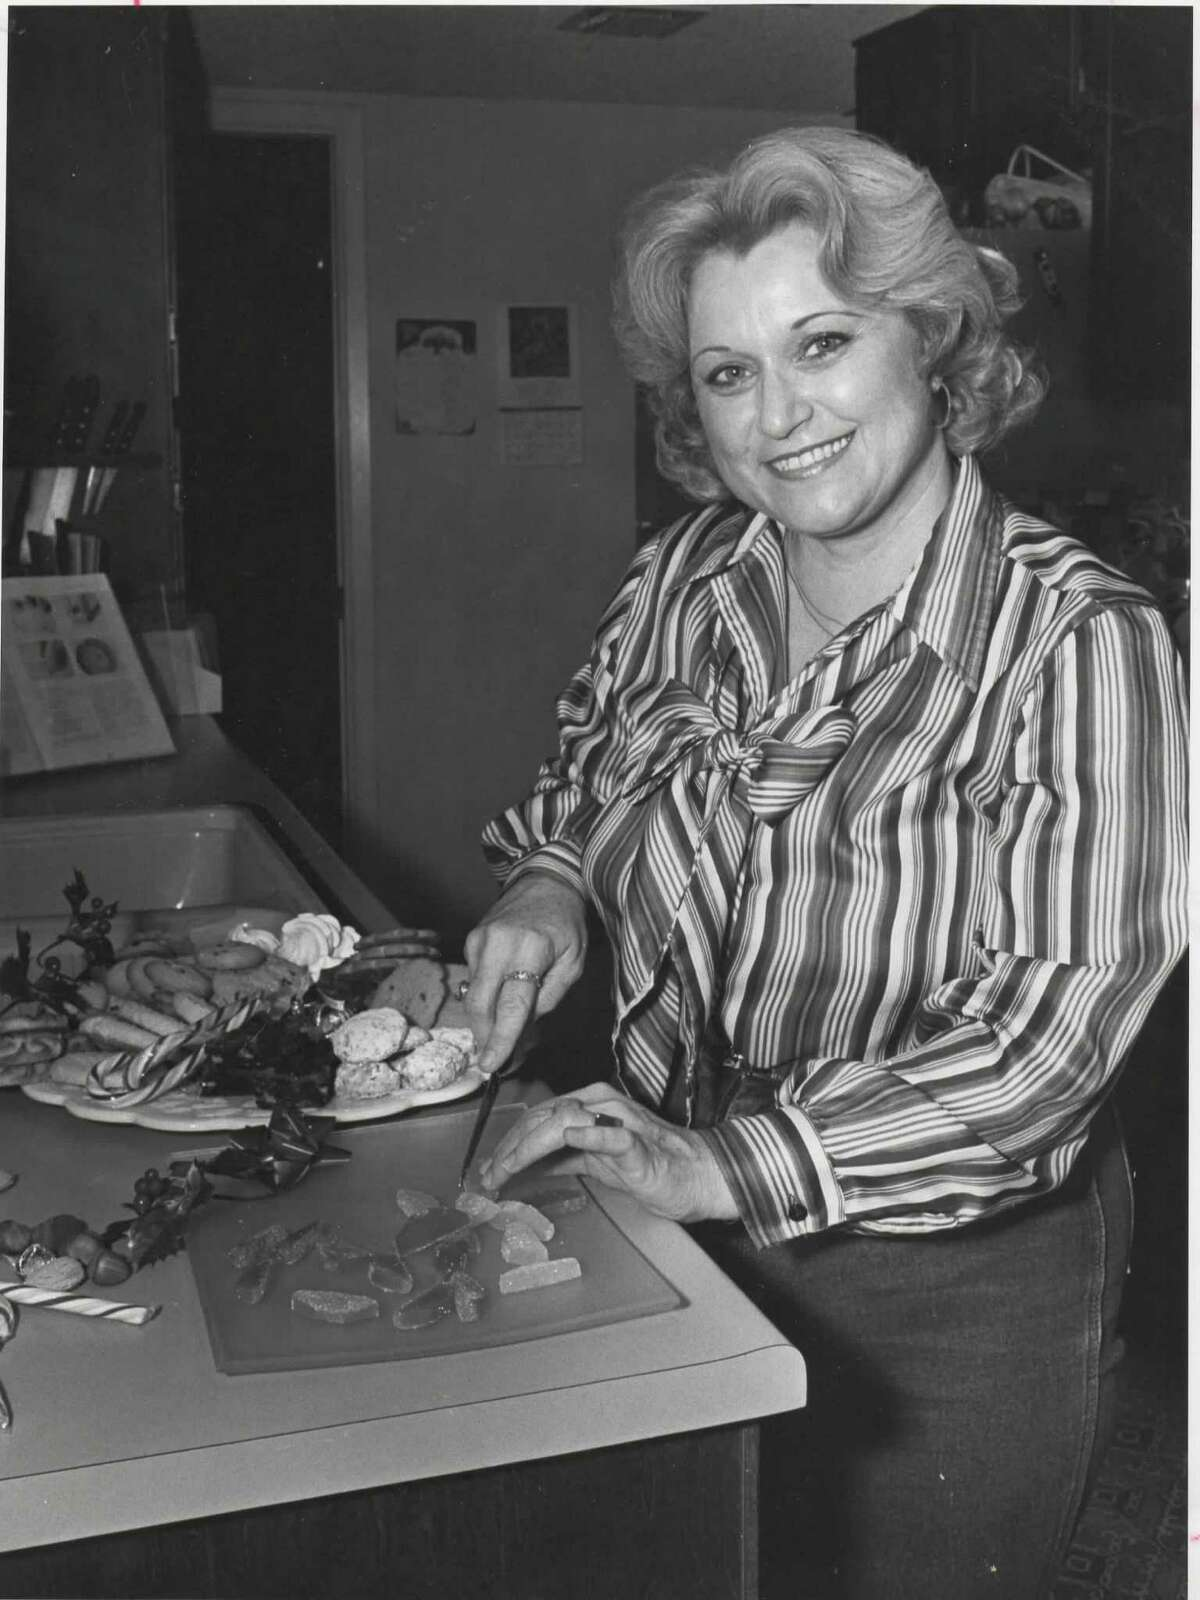 """Mary Mora is making holiday treats in her San Antonio kitchen November 23, 1982. She is the Express-News """"Best Cook on the Block."""" Mora is a coordinator at Joske's and has edited a series of cookbooklets for the department store, including """"Joske's Recipes"""" in February 1982 and """"Cook It Easy, Summer Style"""" in August 1982."""